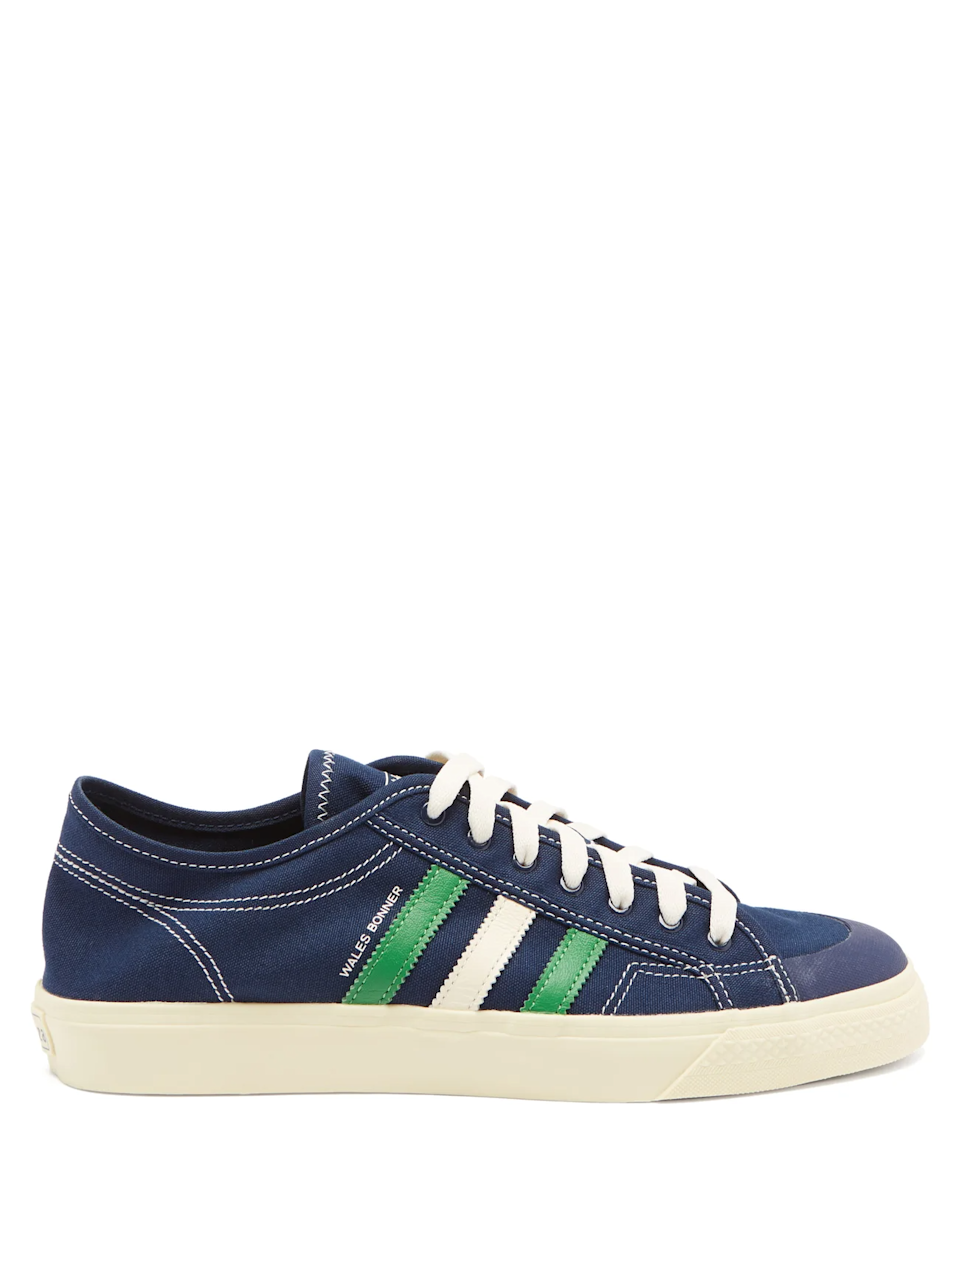 """A classic pair of sneakers is a staple in every dad's wardrobe. Make your dad's stand out in the crowd with this retro pair courtesy of British menswear label <a href=""""https://walesbonner.net/"""" rel=""""nofollow noopener"""" target=""""_blank"""" data-ylk=""""slk:Wales Bonner"""" class=""""link rapid-noclick-resp"""">Wales Bonner</a> and his collab with Adidas.<br><br><strong>Adidas x Wales Bonner</strong> Nizza Three-Stripes Canvas Trainers, $, available at <a href=""""https://go.skimresources.com/?id=30283X879131&url=https%3A%2F%2Fwww.matchesfashion.com%2Fus%2Fproducts%2FAdidas-X-Wales-Bonner-Nizza-three-stripes-canvas-trainers-1398305"""" rel=""""nofollow noopener"""" target=""""_blank"""" data-ylk=""""slk:MatchesFashion"""" class=""""link rapid-noclick-resp"""">MatchesFashion</a>"""